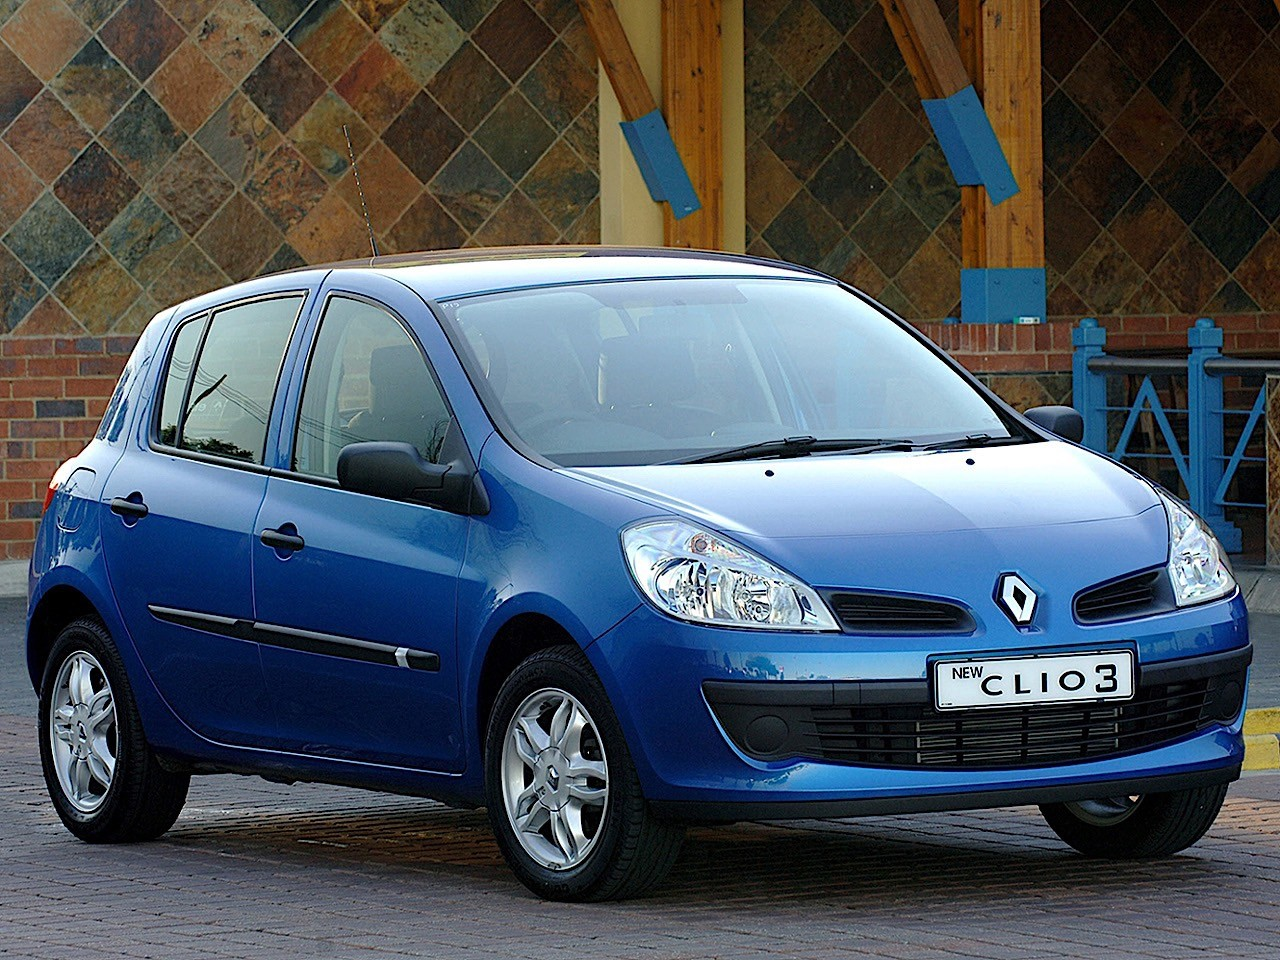 RENAULT Clio 5 Doors specs & photos - 2006, 2007, 2008 ...